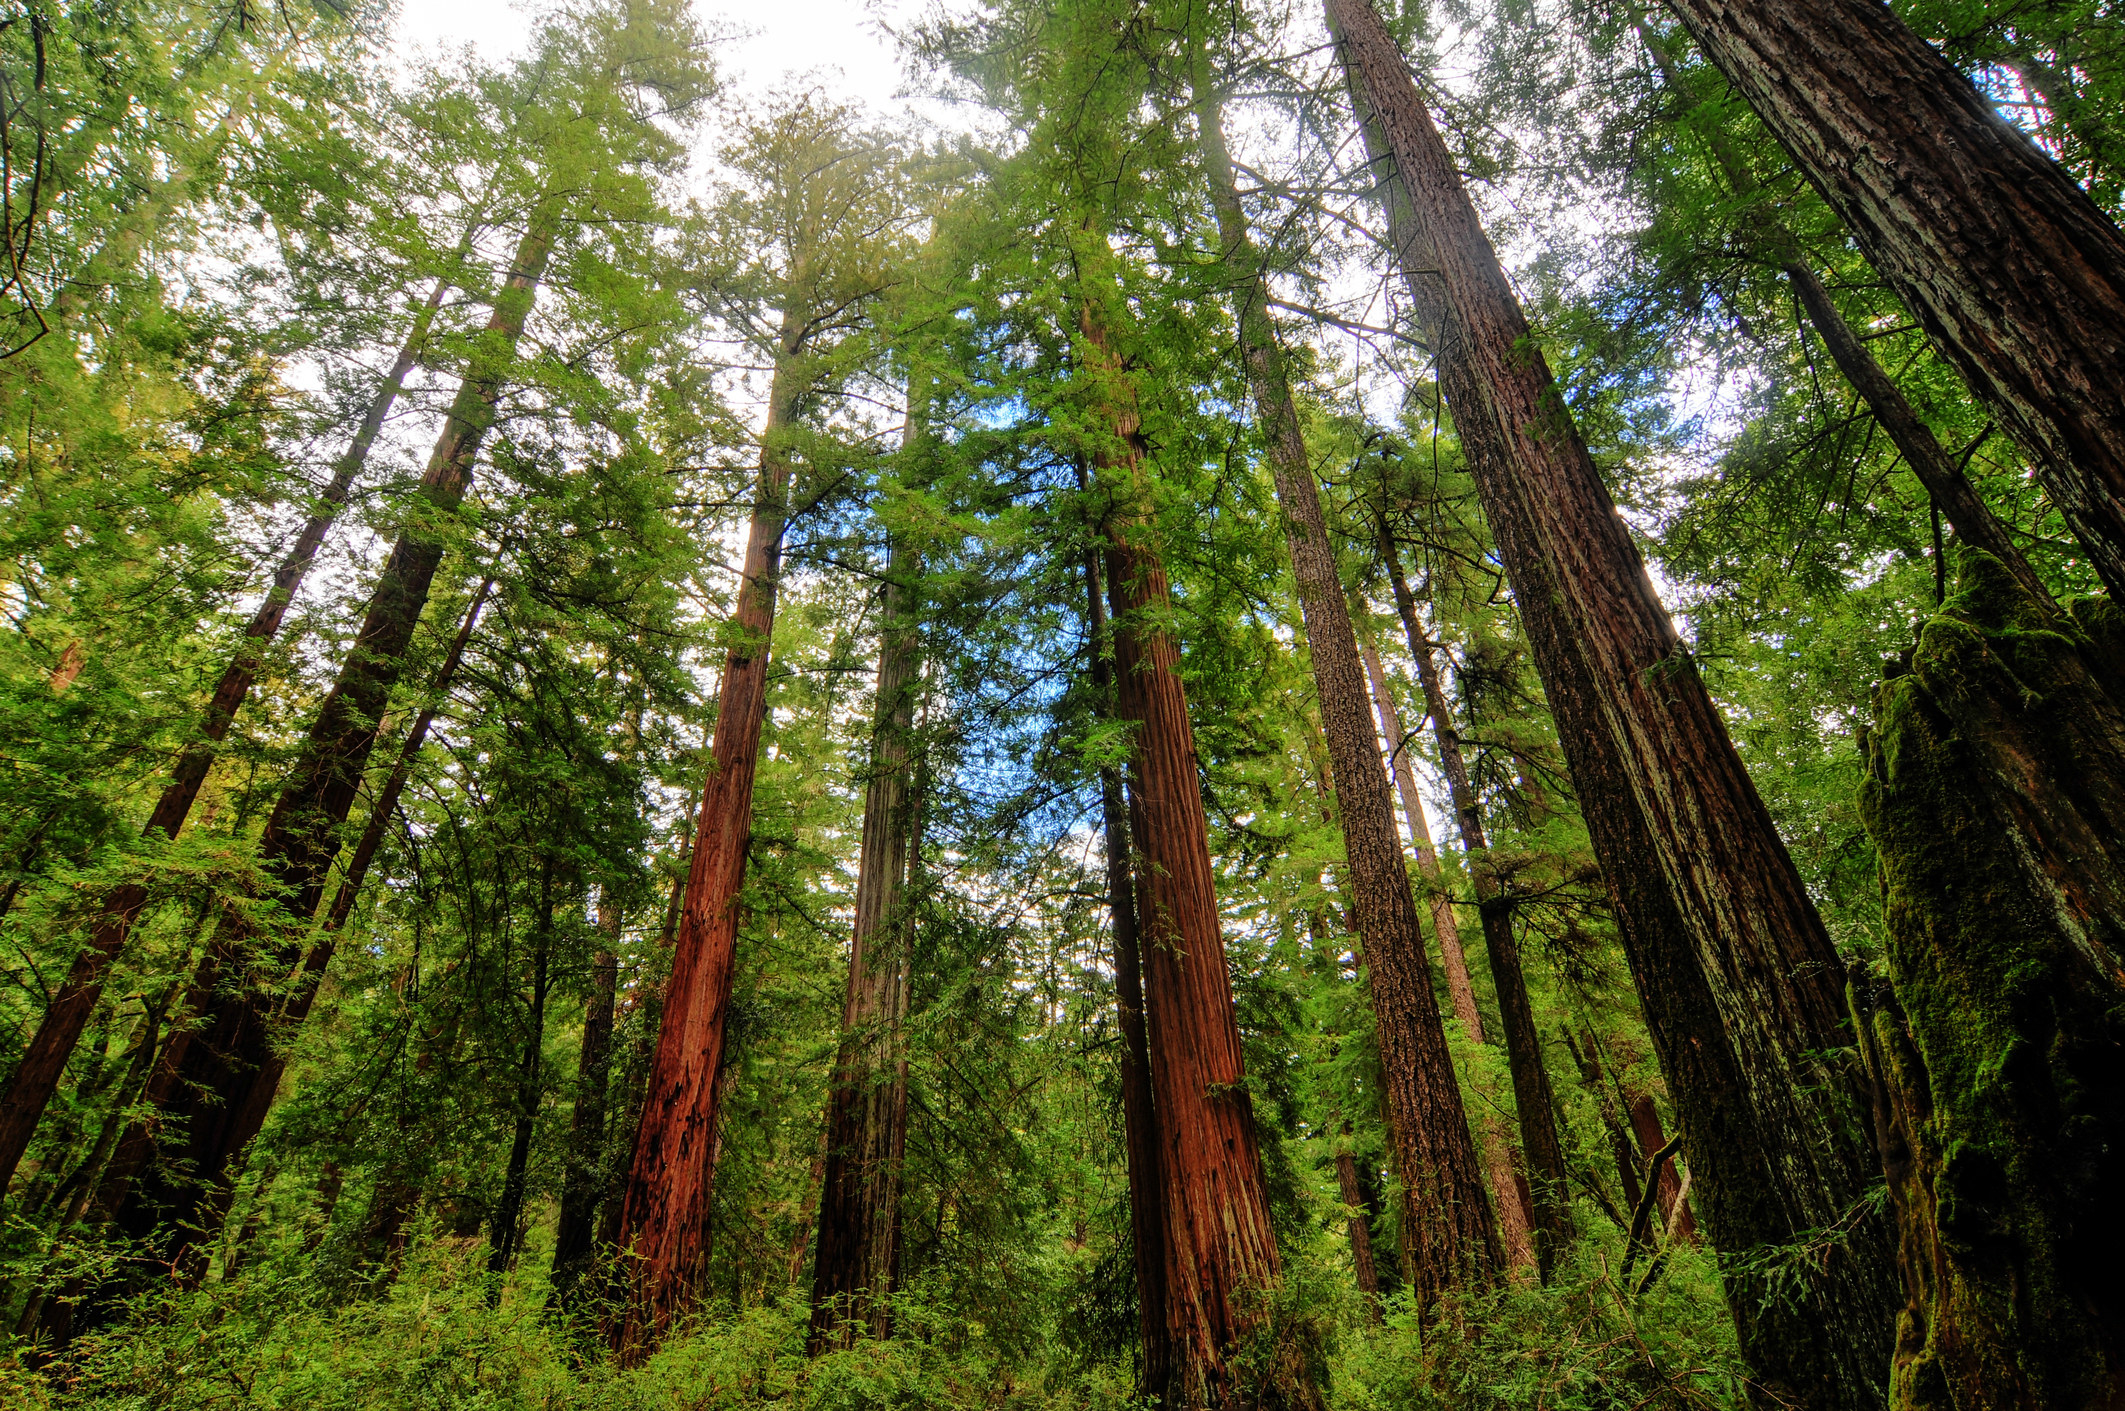 Sequoia Trees in Big Basin Redwoods State Park.